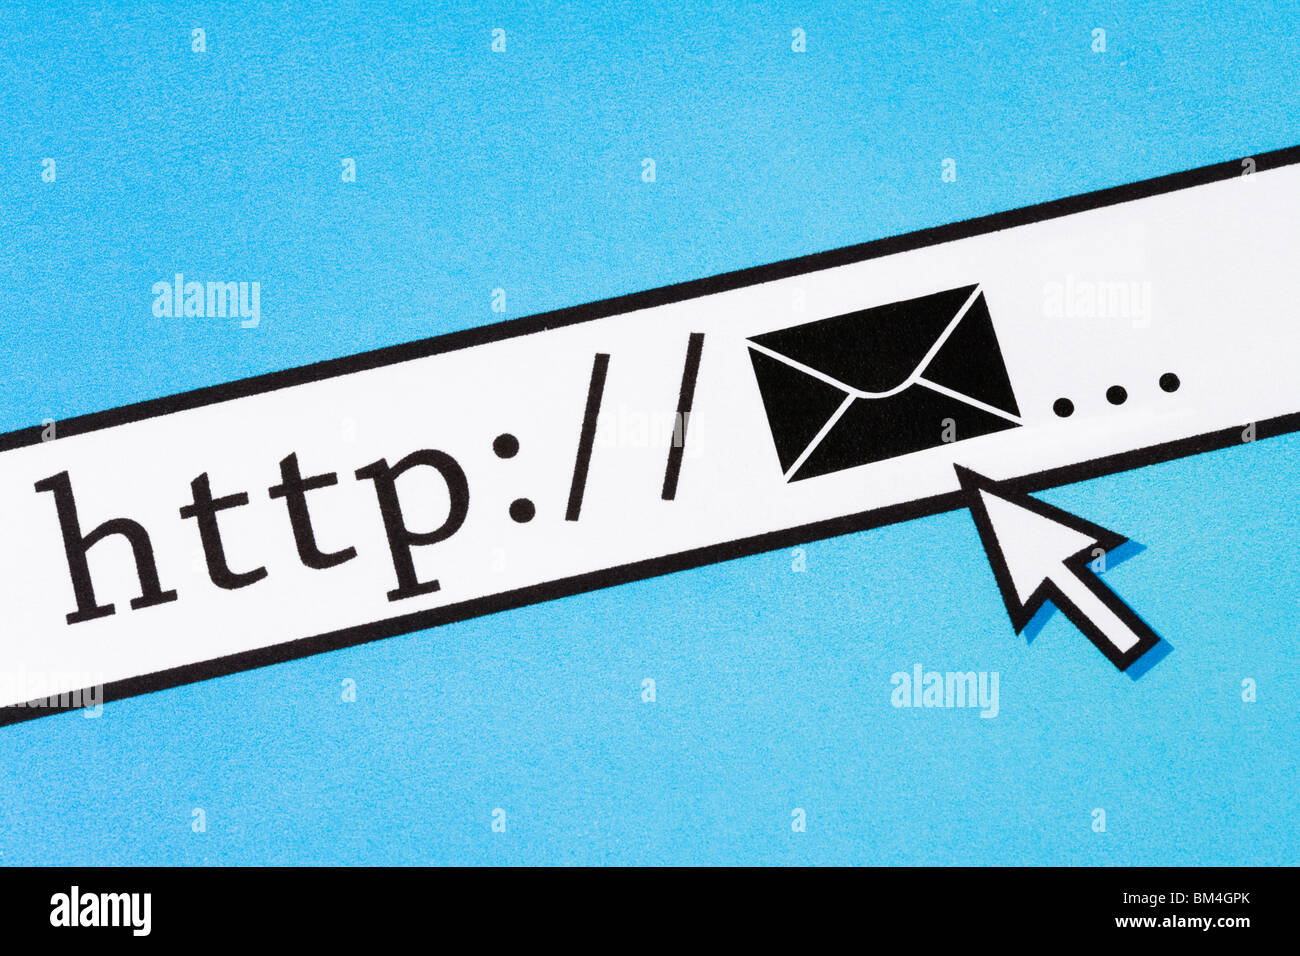 Computer Screen, concept of email - Stock Image